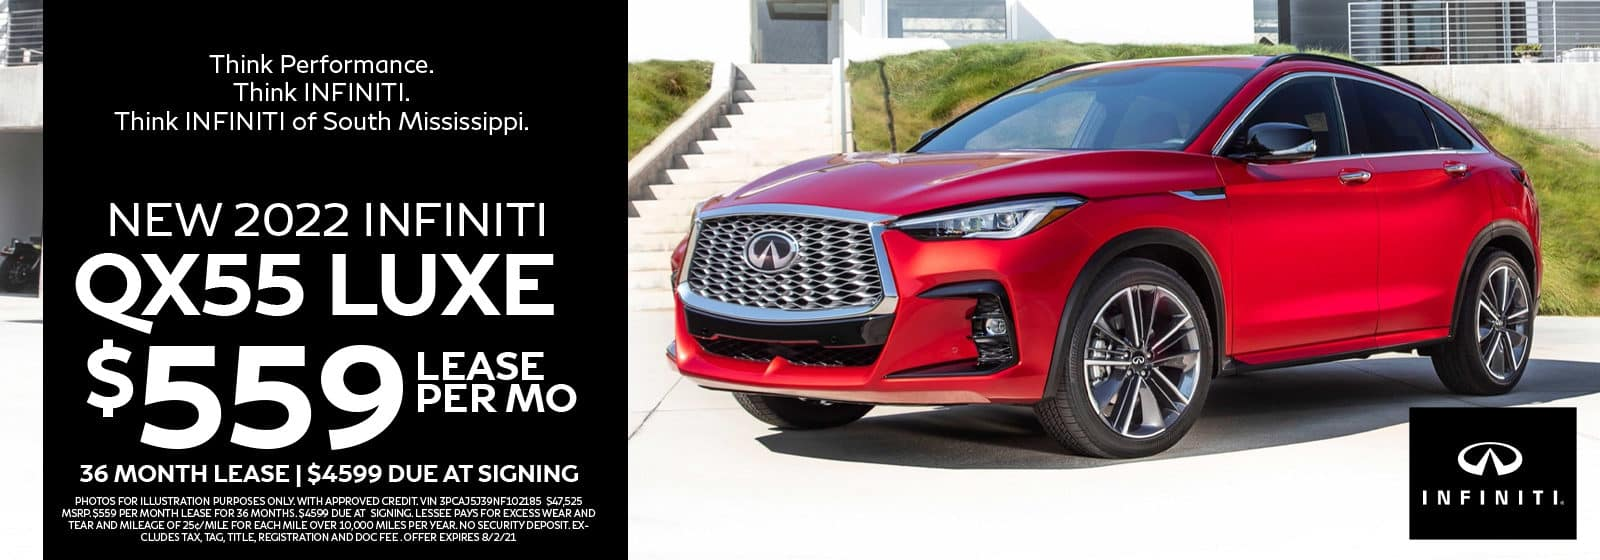 New 2022 INFINITI QX55 for Lease in South Mississippi